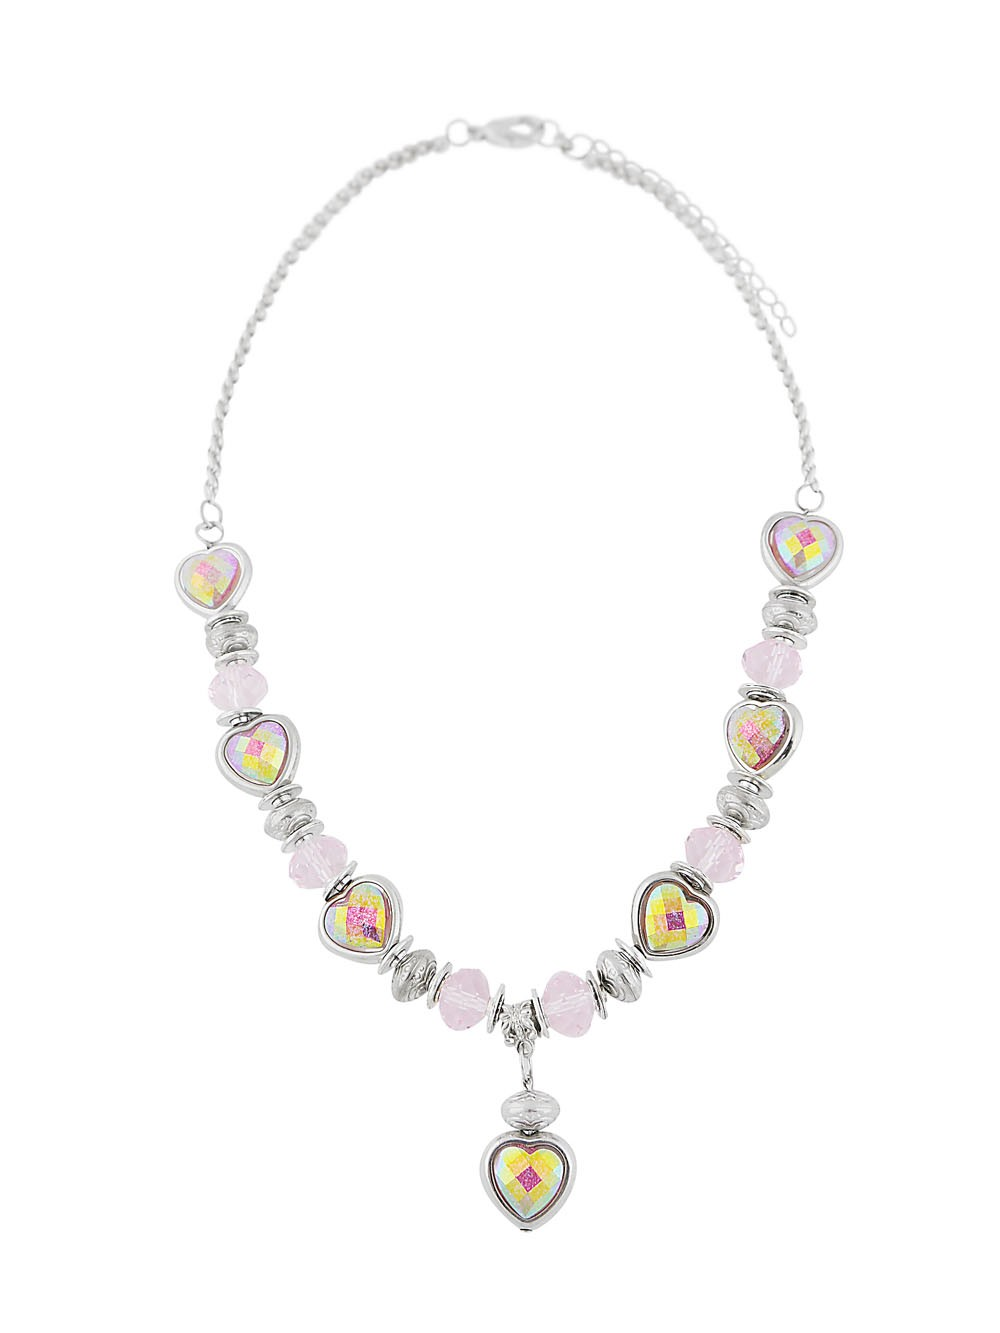 Heart Pendant and Crystal Bead Necklace